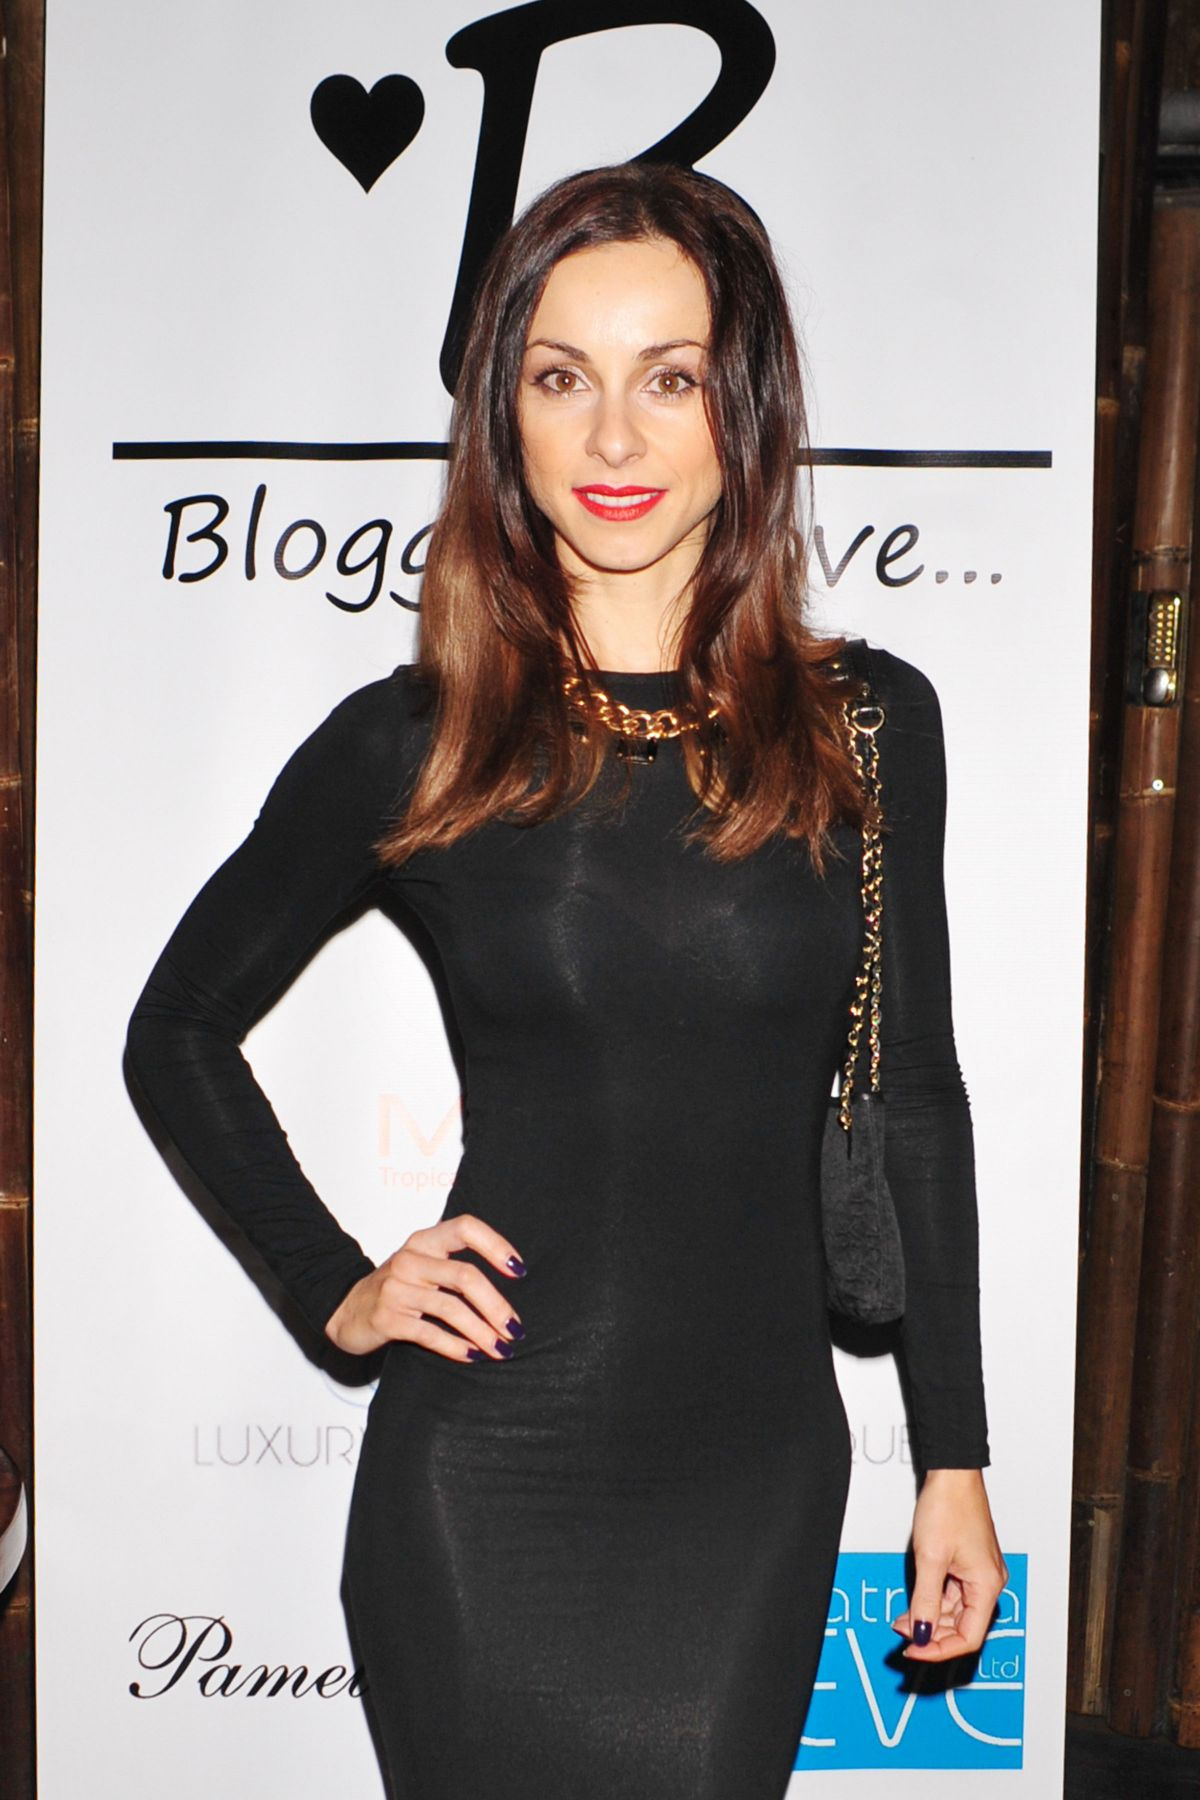 LINDSAY ARMAOU at The Bloggers Love Secret Garden Event in London